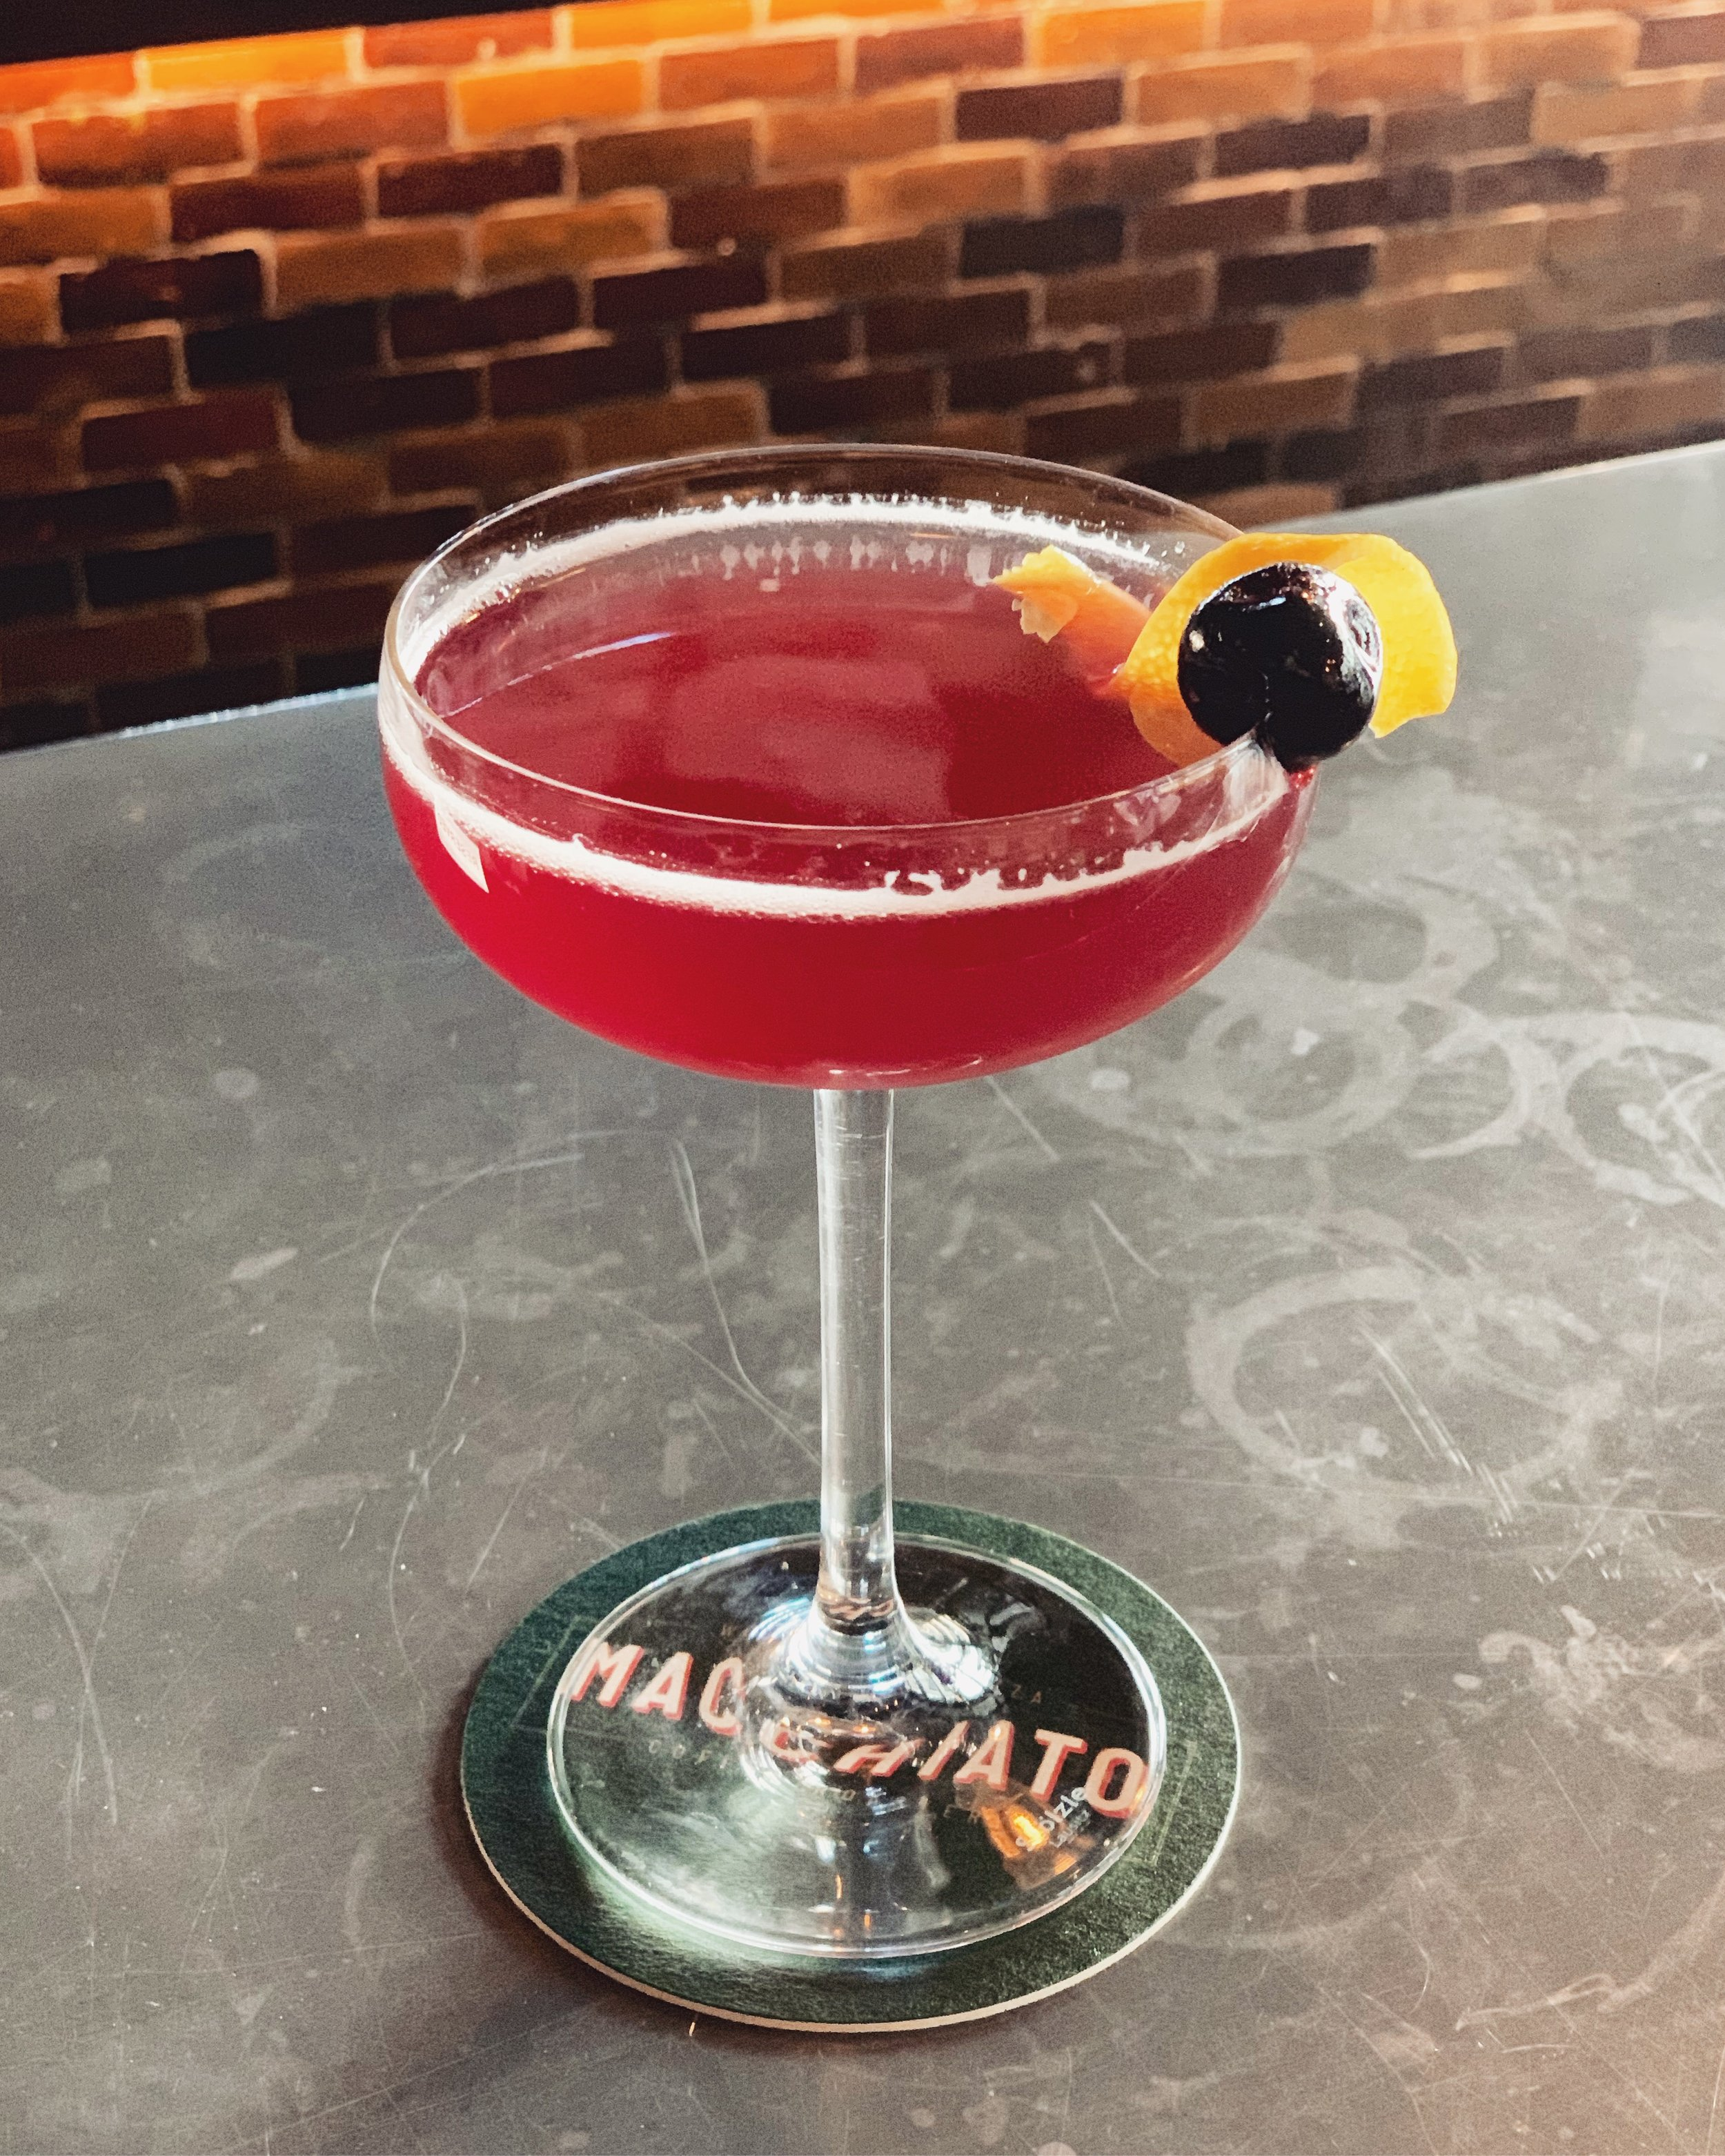 21-27 August - ~ ANNE BOLEYN~// @ink_gin , @cinzano.official , blackberry, lime, @luxardoofficial //Strong, sweet and tangy 🌹 .